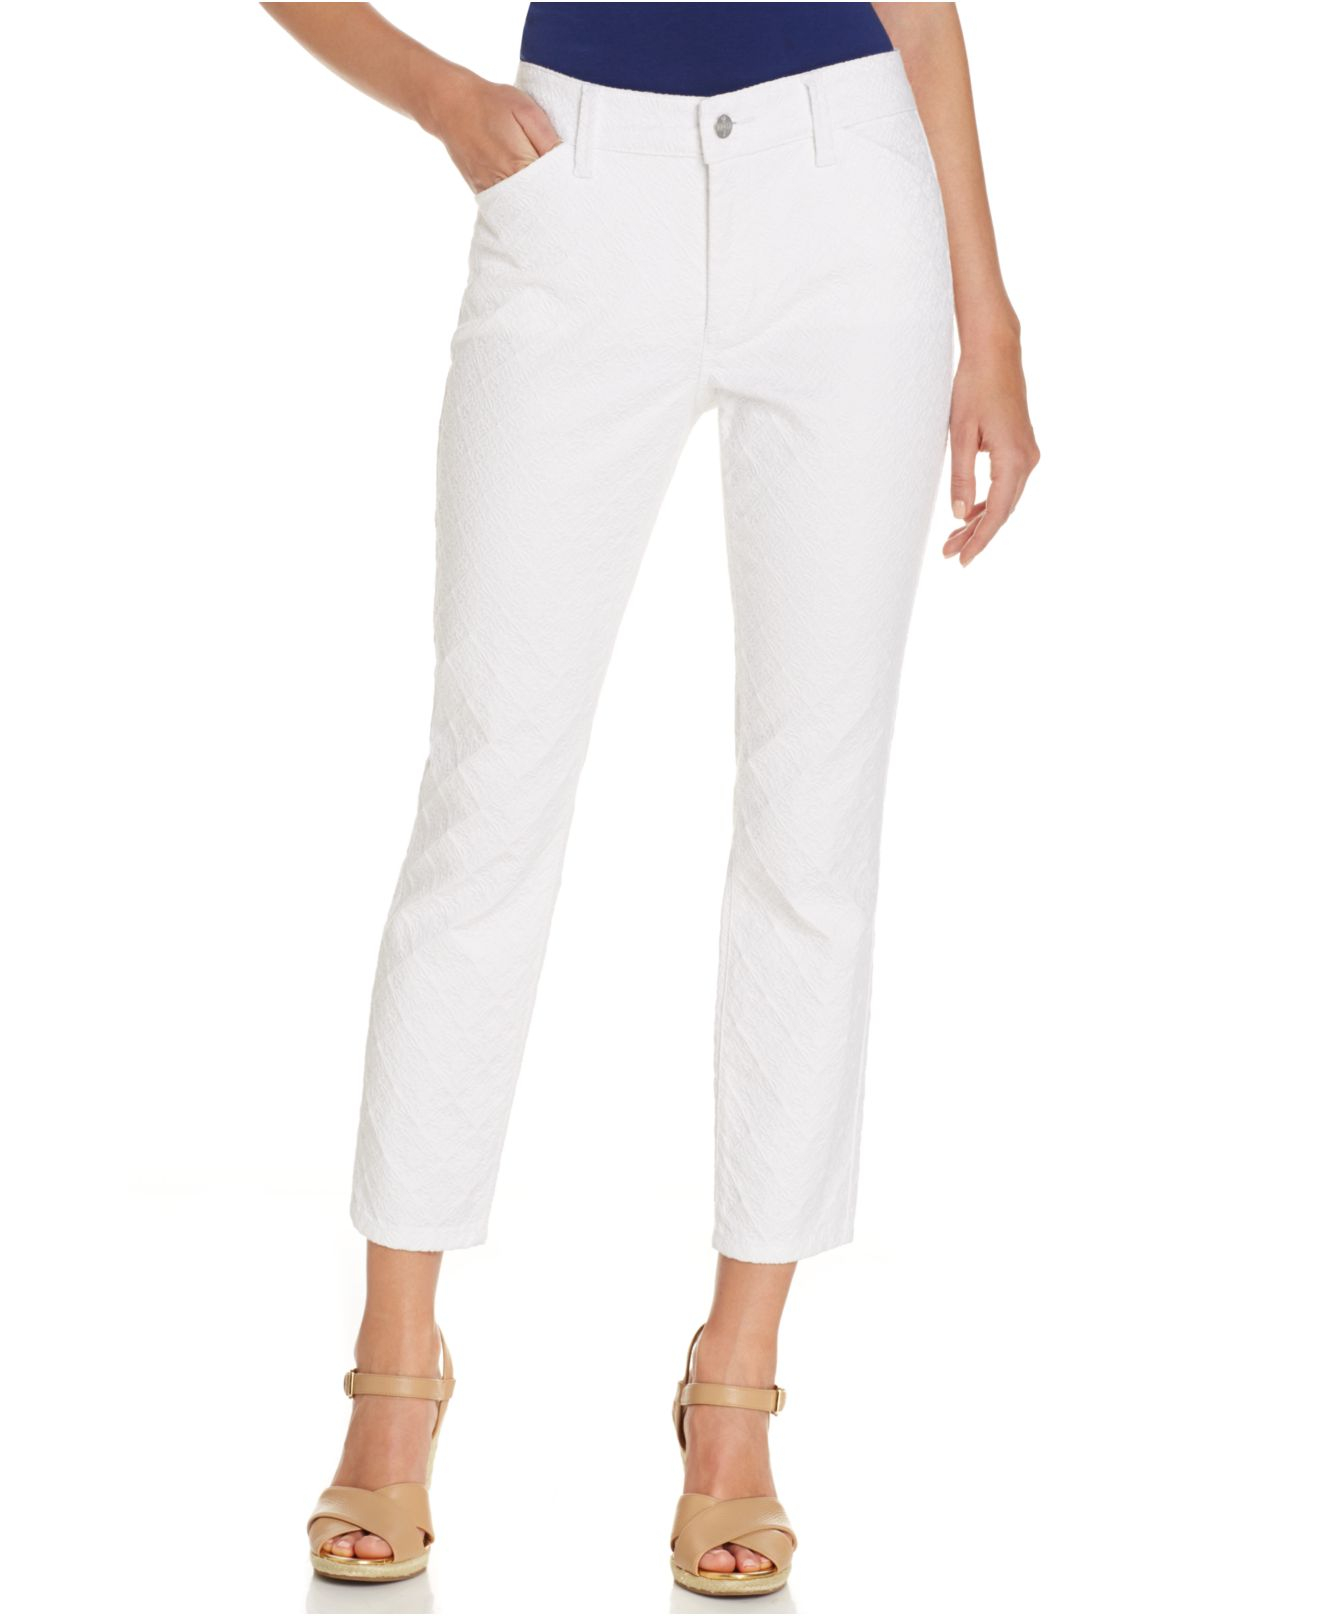 Shop petite jeans in a variety of styles from White House Black Market. Proportioned to fit you perfectly. Free shipping & returns on all full price petite styles.